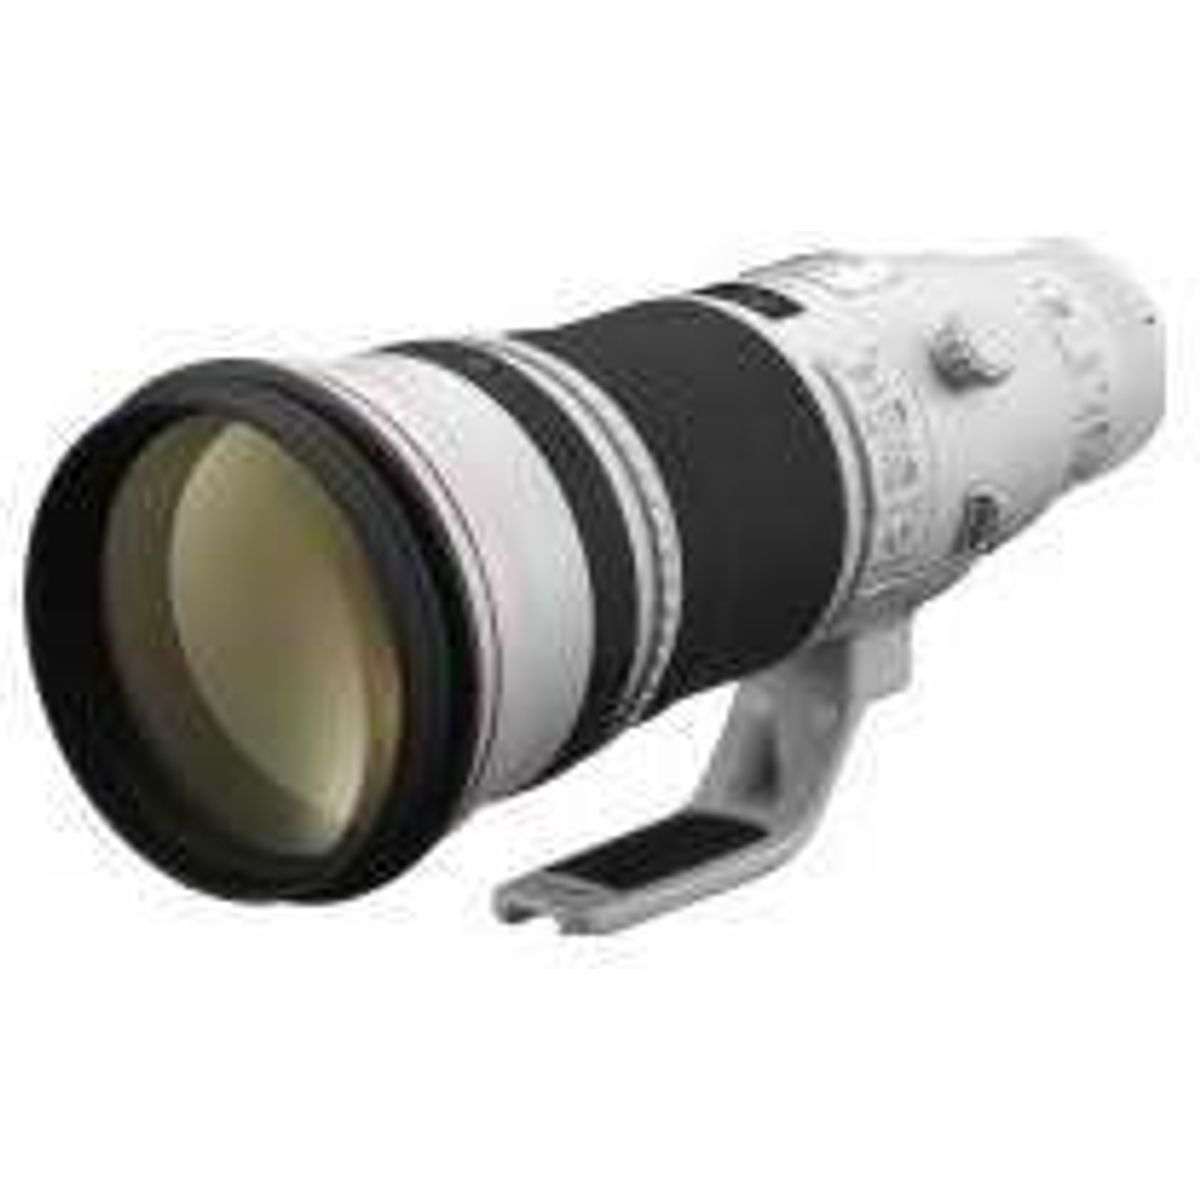 Canon 500mm f/4.0 L IS USM II